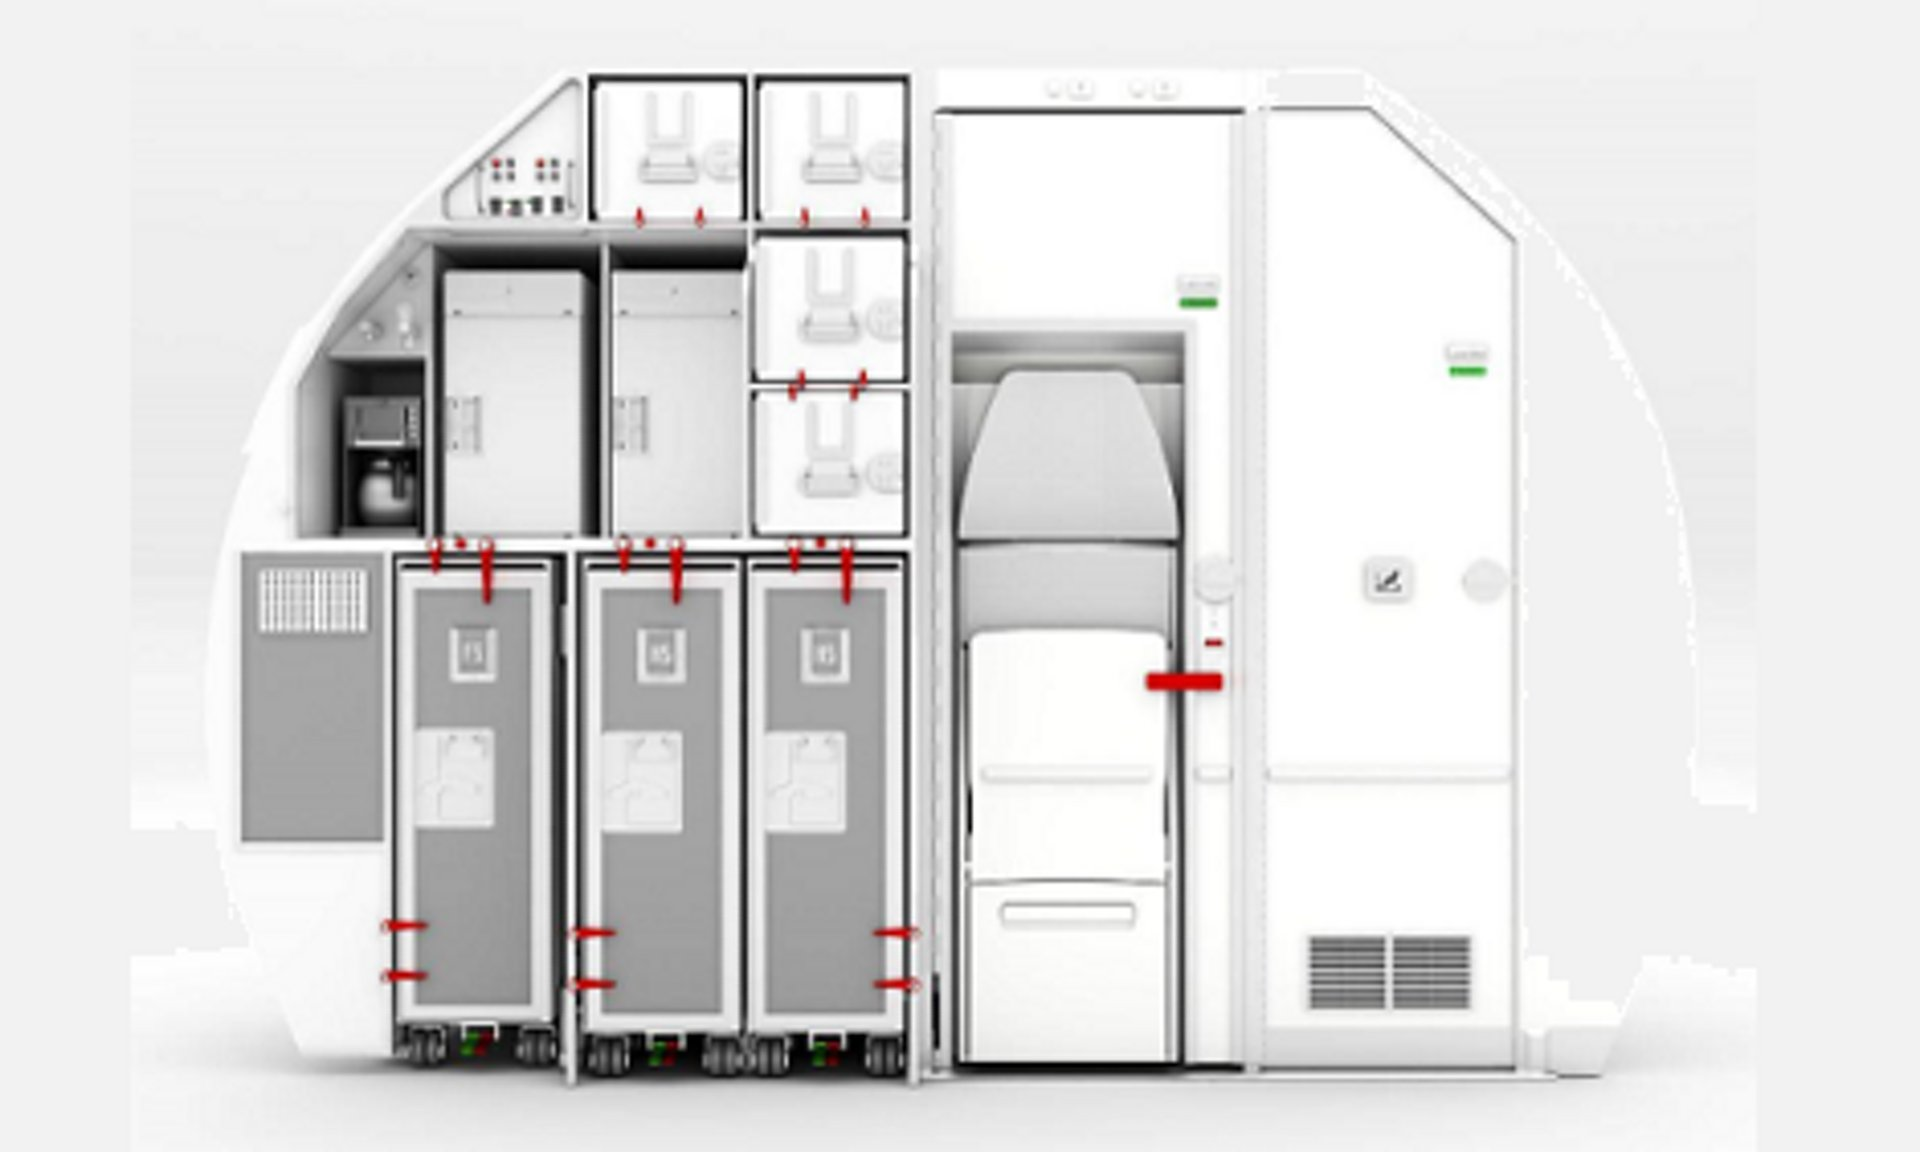 188 PAX Solution for A320 A great solution for operators to increase revenues from cabin space.